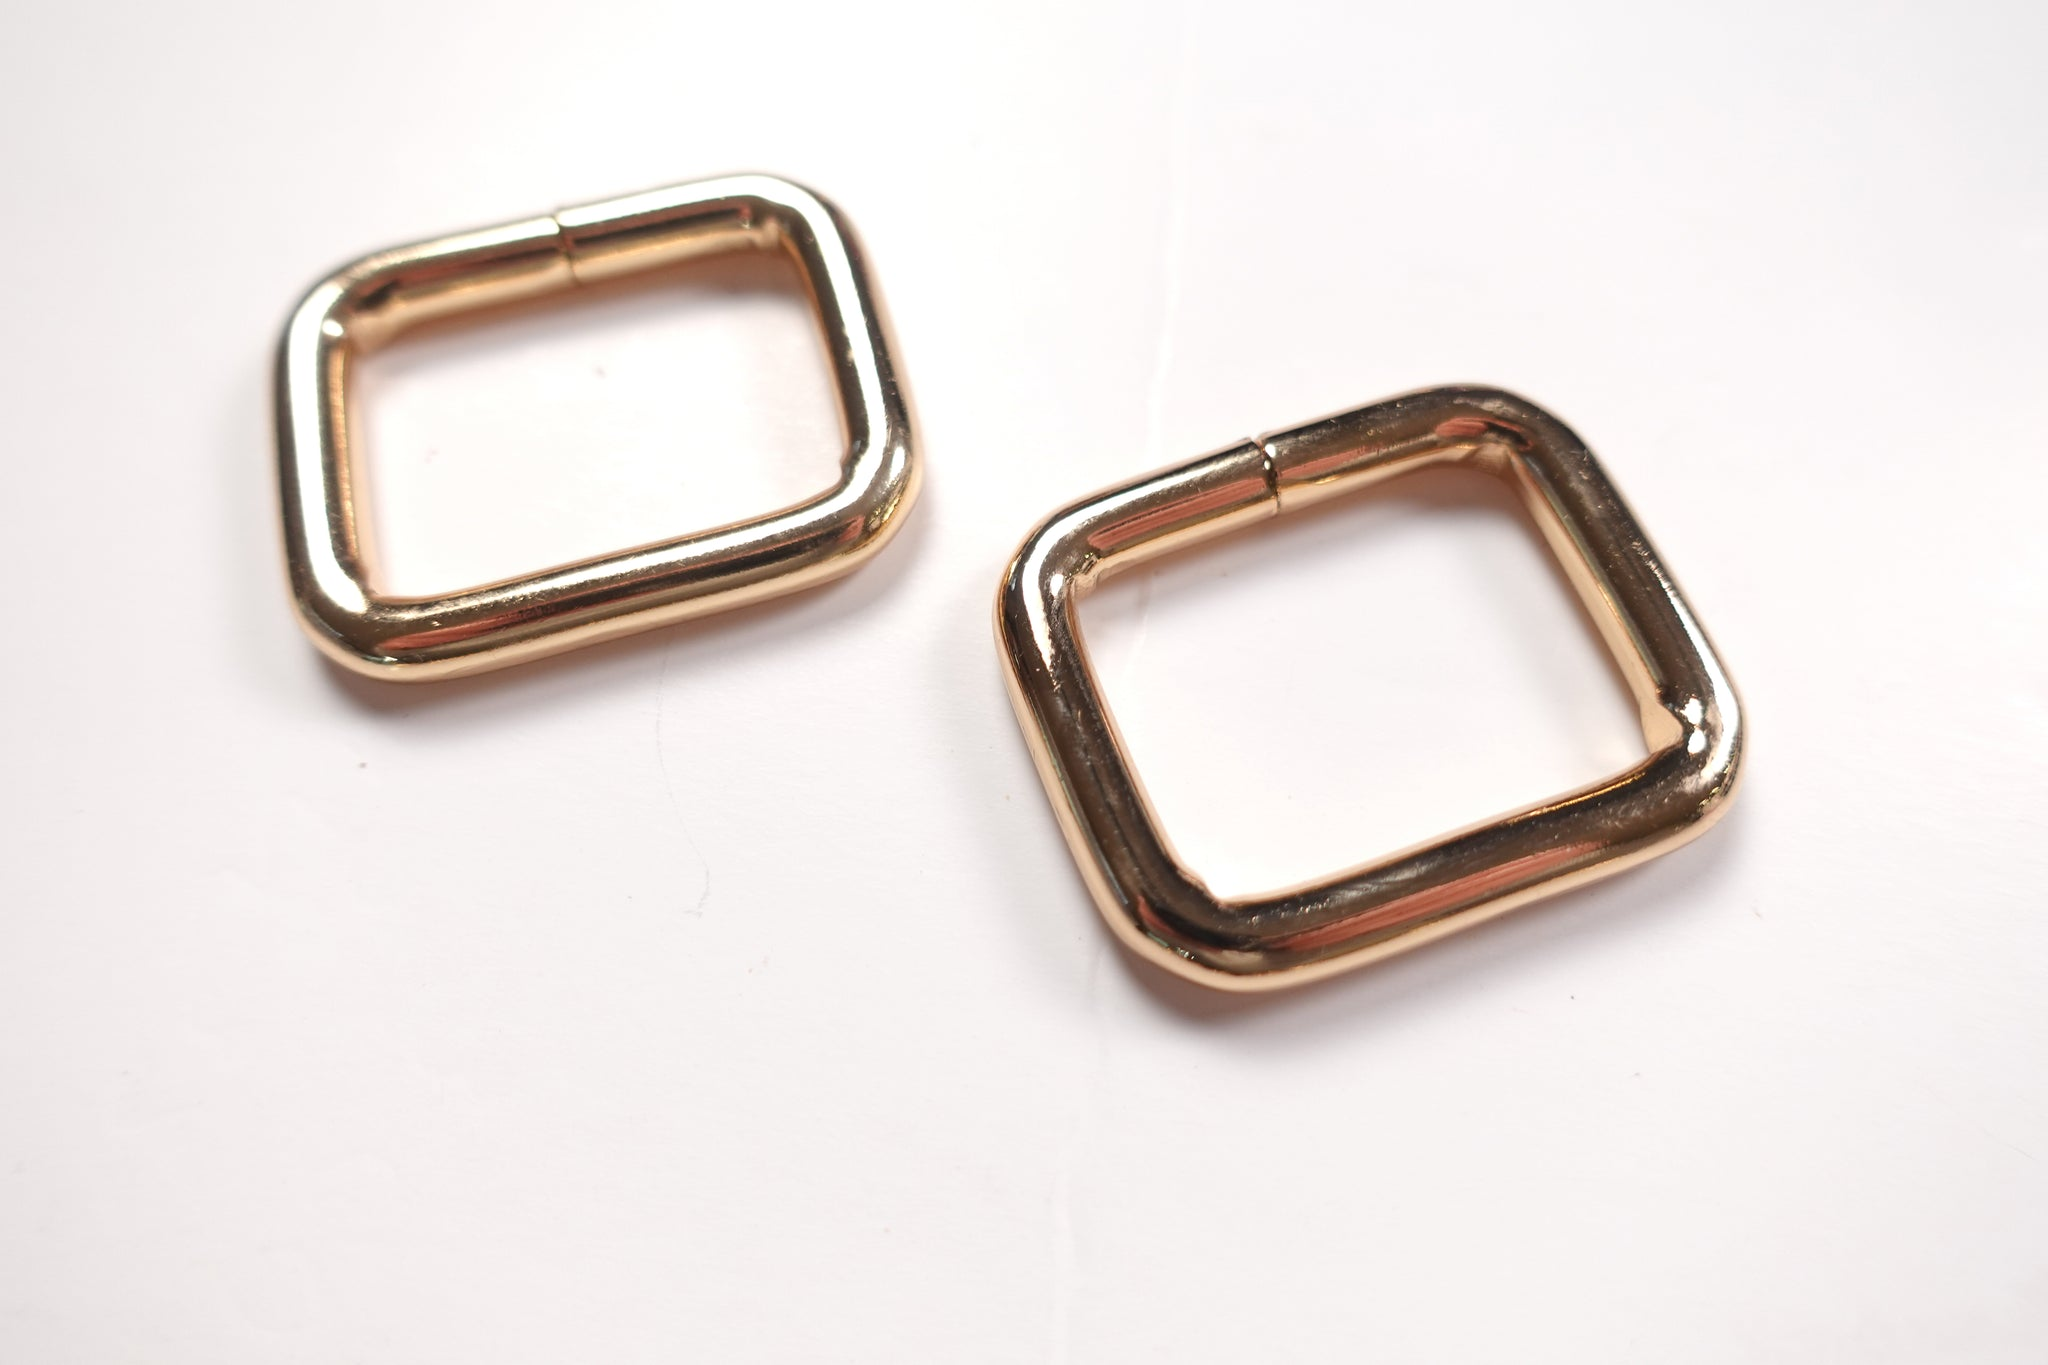 Brand New Super Chunky 1 Inch Rectangular Rings gold Set of 2